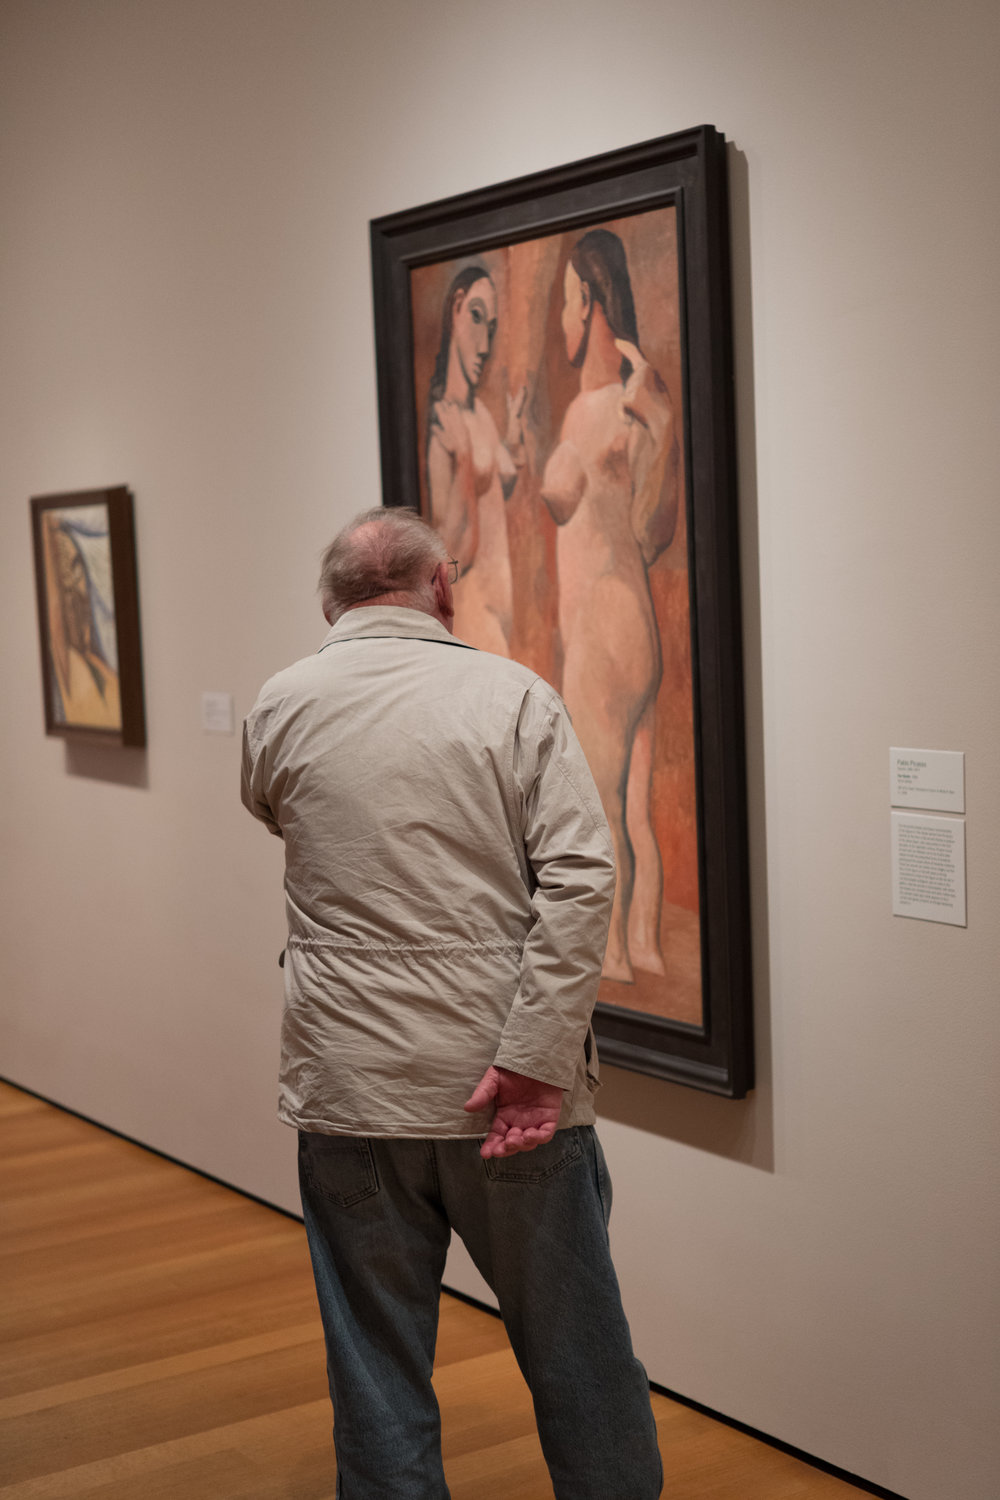 Man at the MoMA